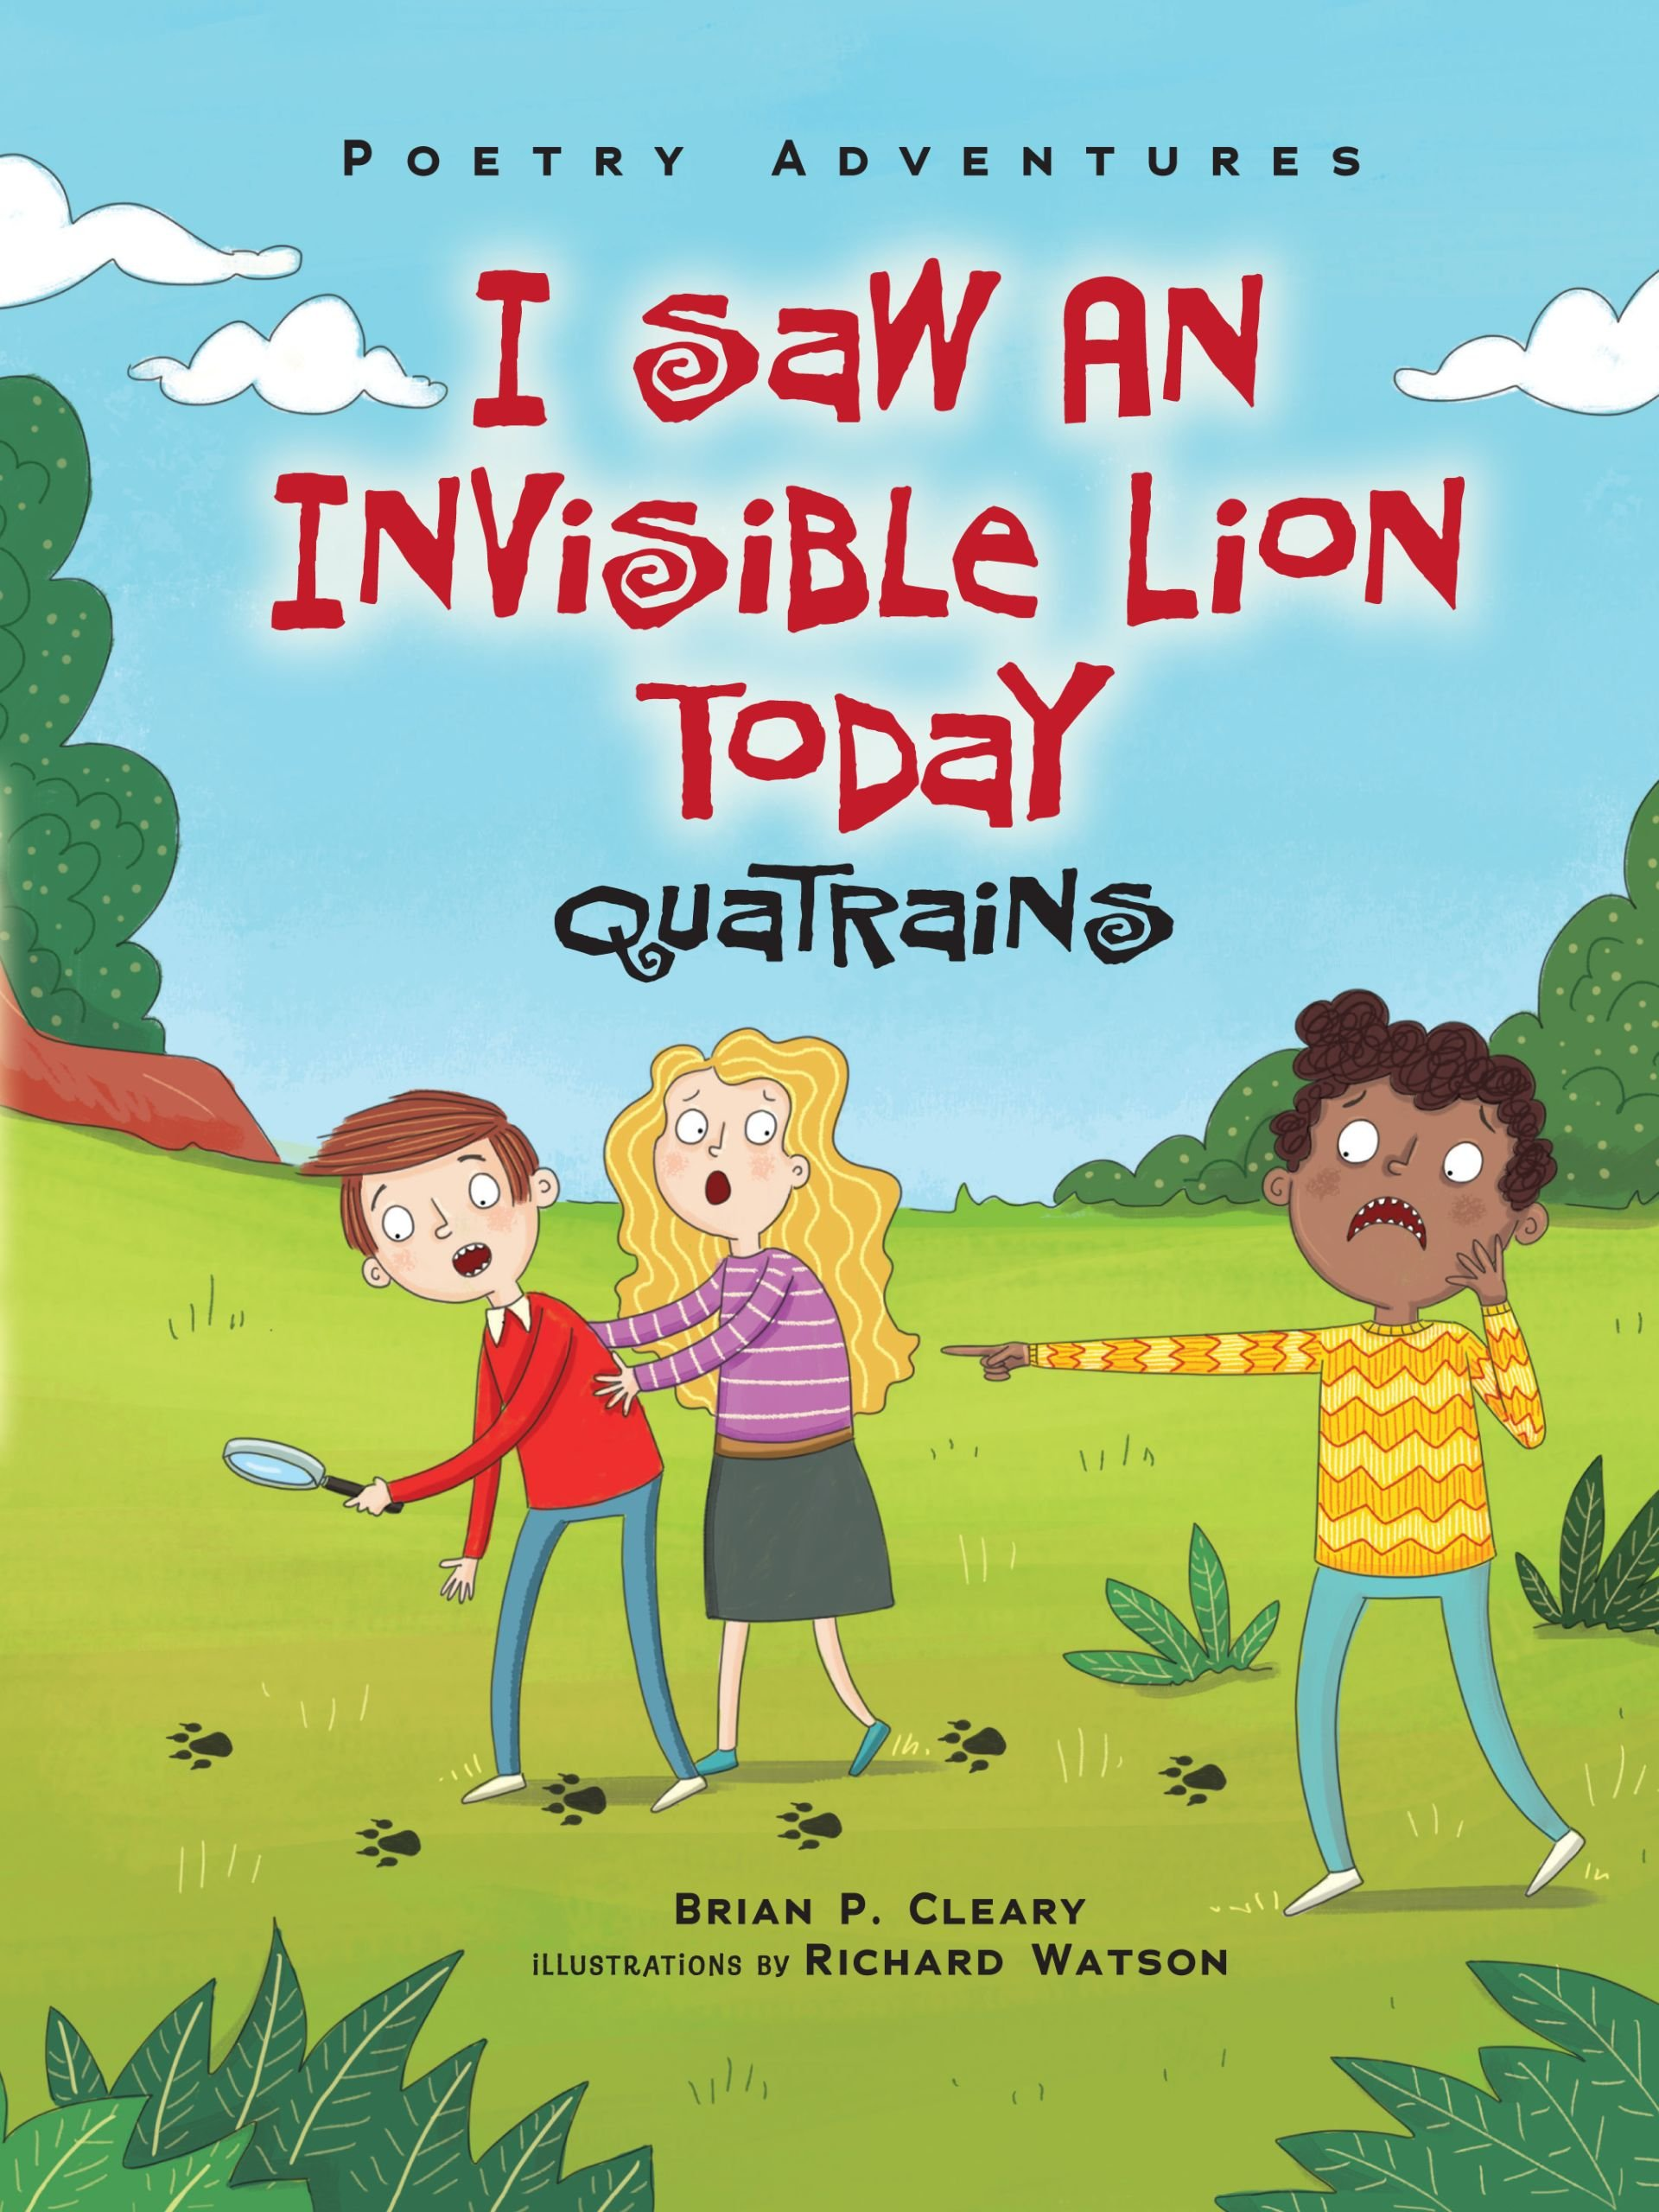 I Saw an Invisible Lion Today: Quatrains (Poetry Adventures)